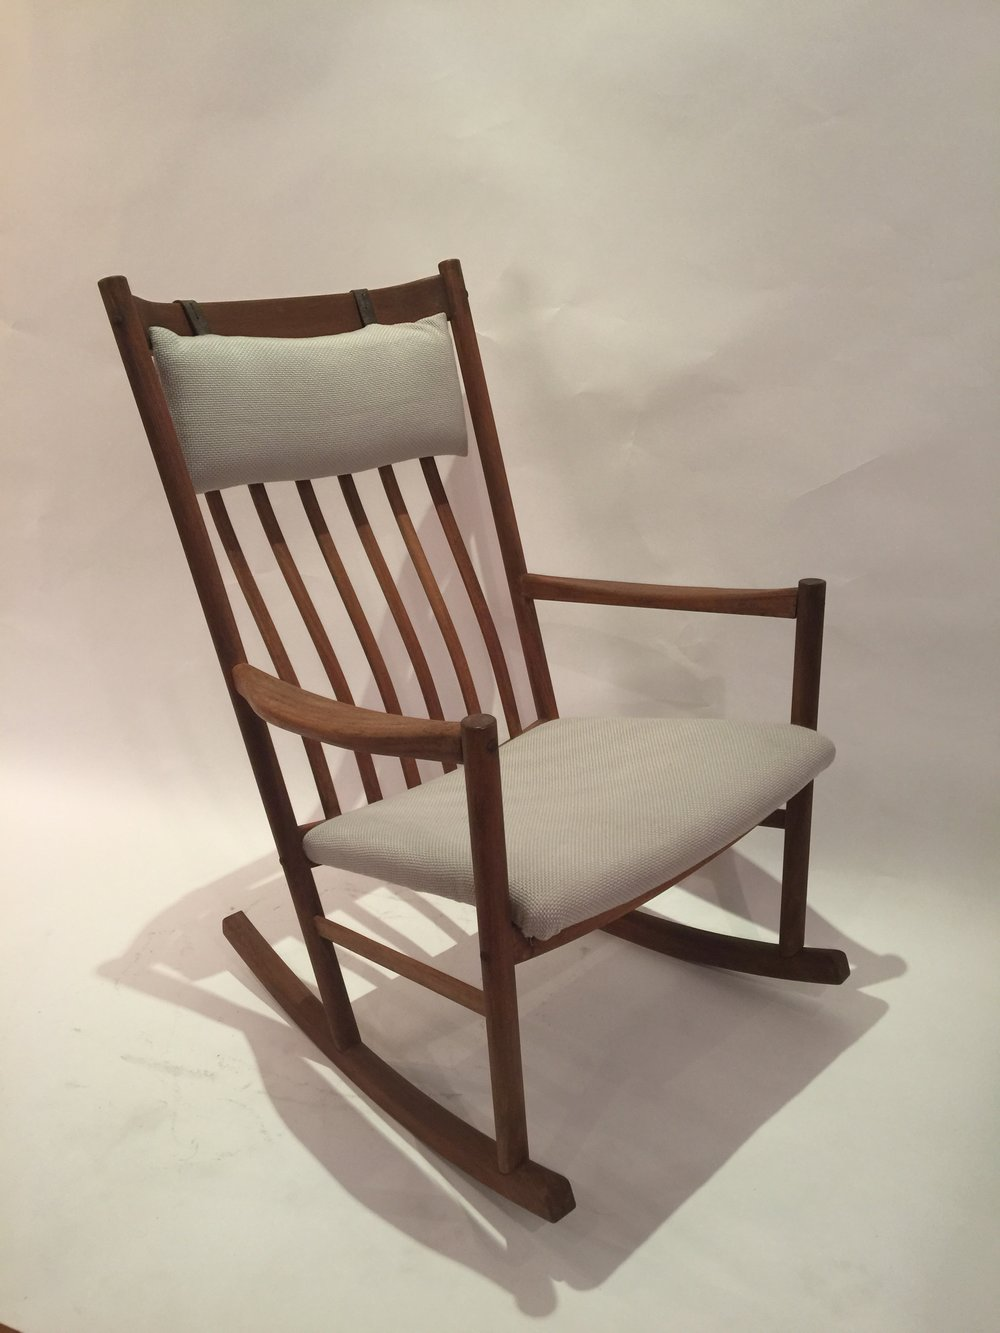 Wagner for Tram Stole - rocking chair 3.JPG